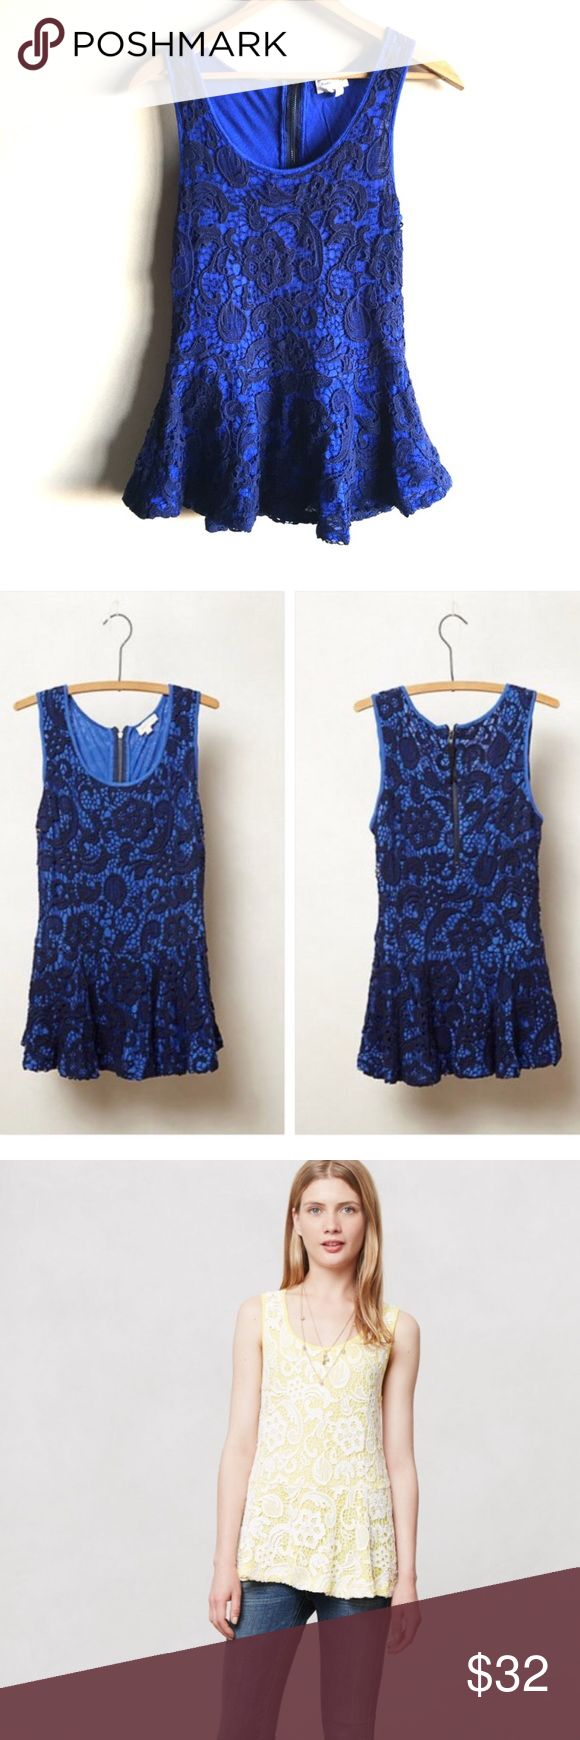 Anthropologie Meadow Rue Emilia Blue Peplum Top Anthropologie Meadow Rue Emilia blue crochet peplum top.  Features darker blue crochet over lighter blue lining.  Zips in back.  So cute!  Perfect over a pencil skirt or skinny jeans.  In excellent condition. Anthropologie Tops